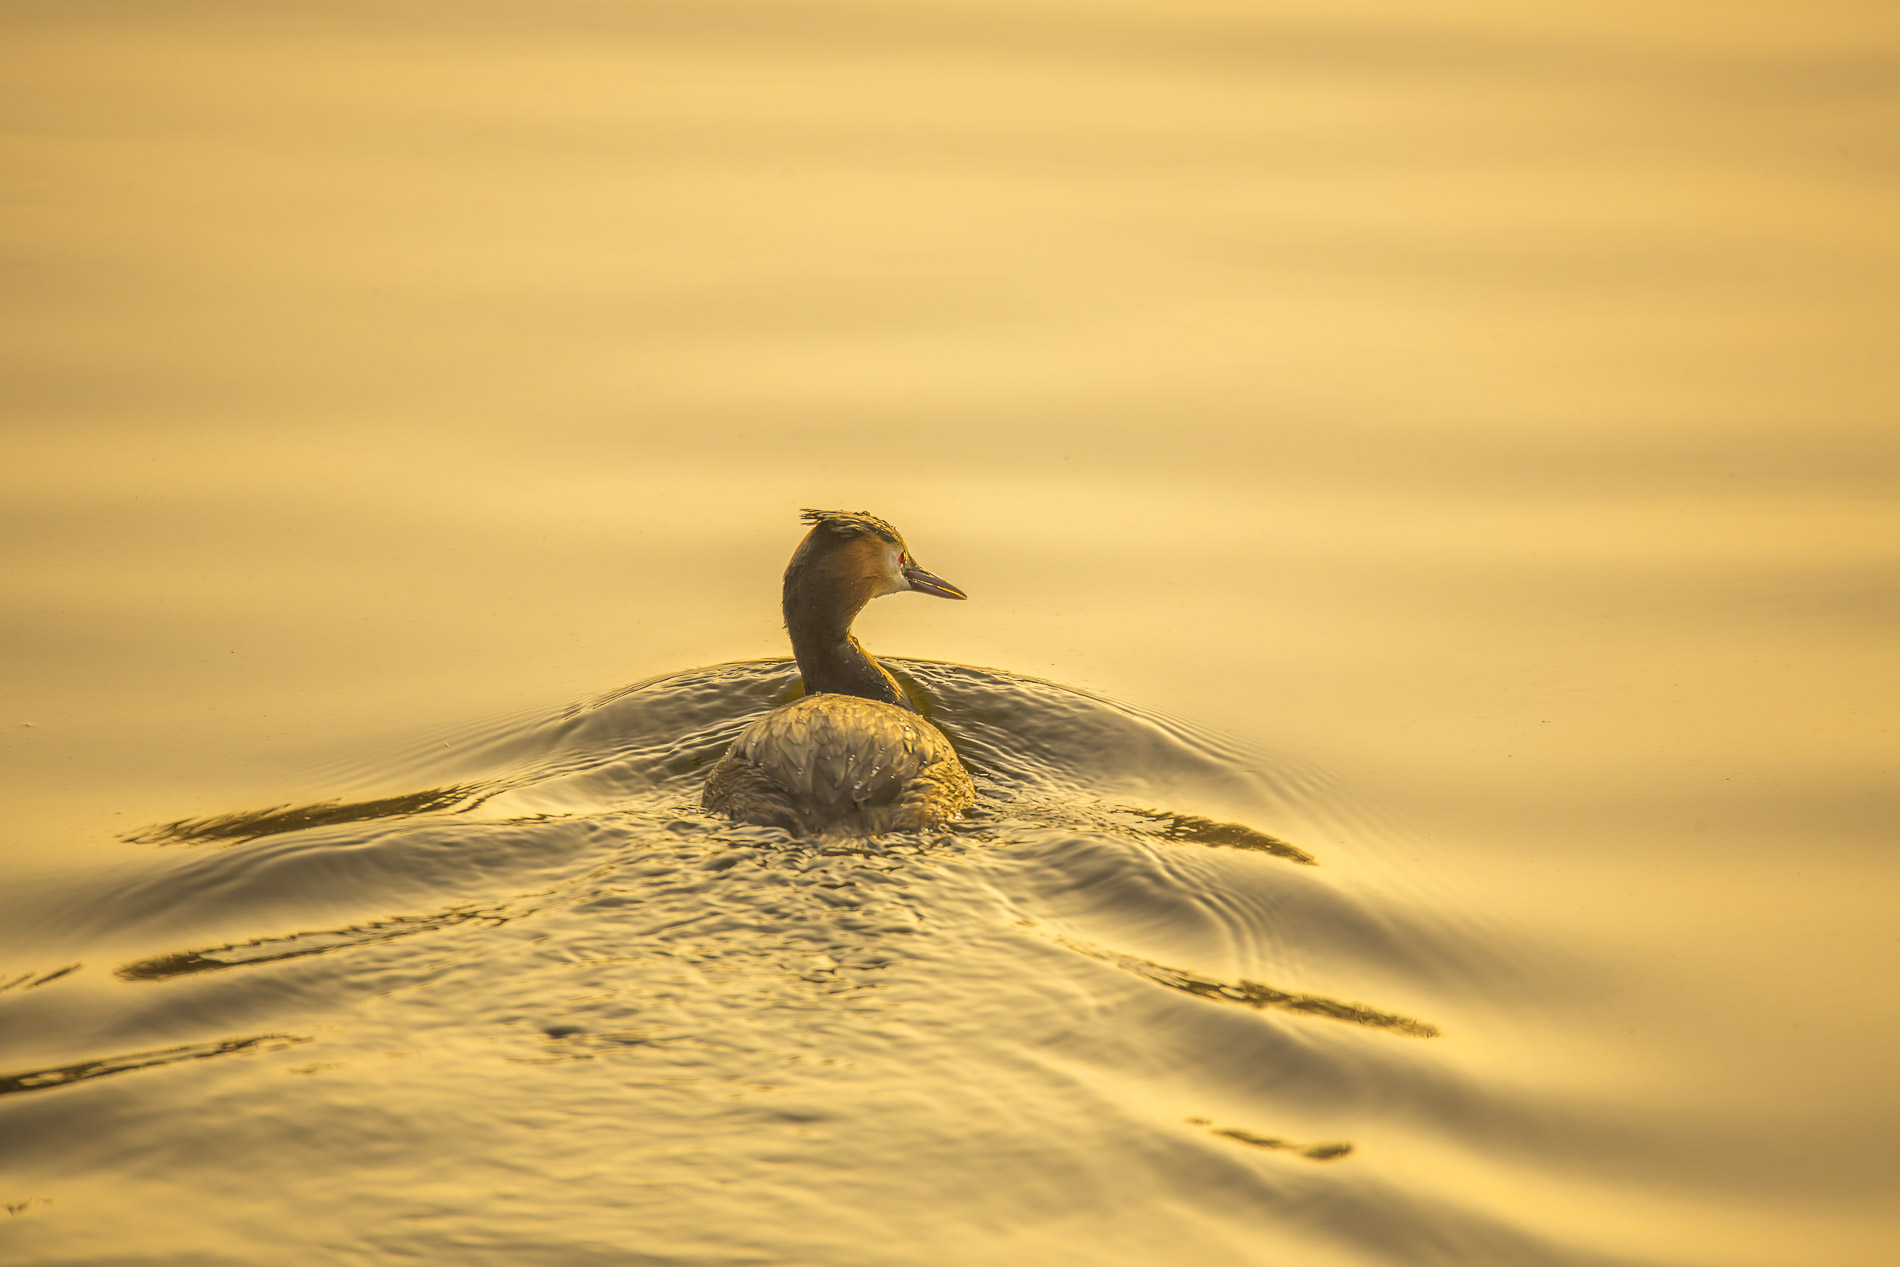 Fuut - Great Crested Grebe - Netherlands